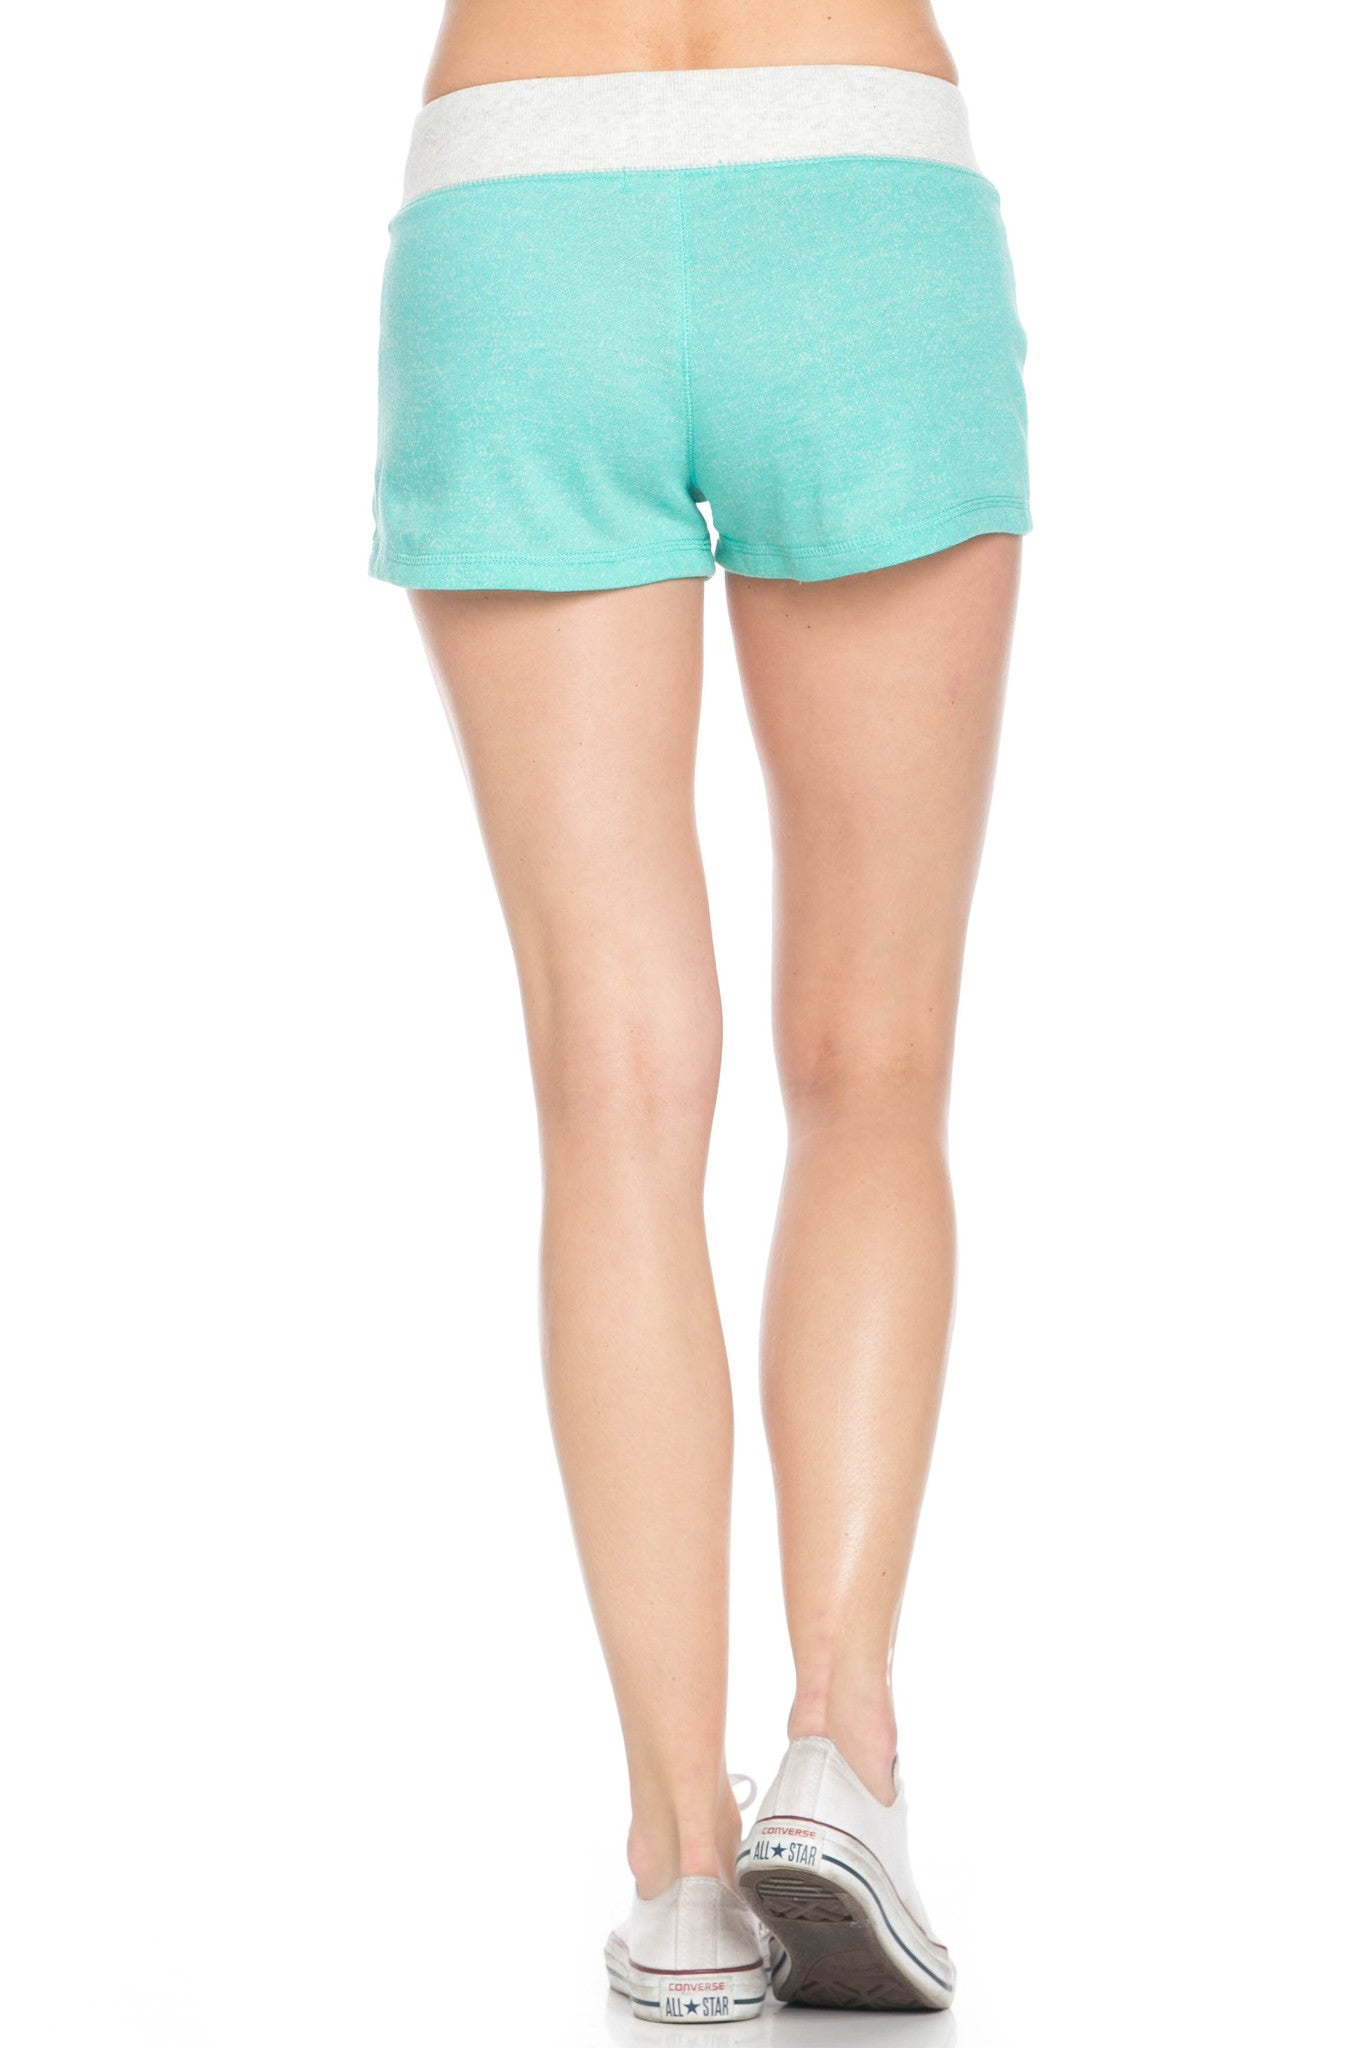 Contrast French Terry Knit Mint Shorts - Shorts - My Yuccie - 4